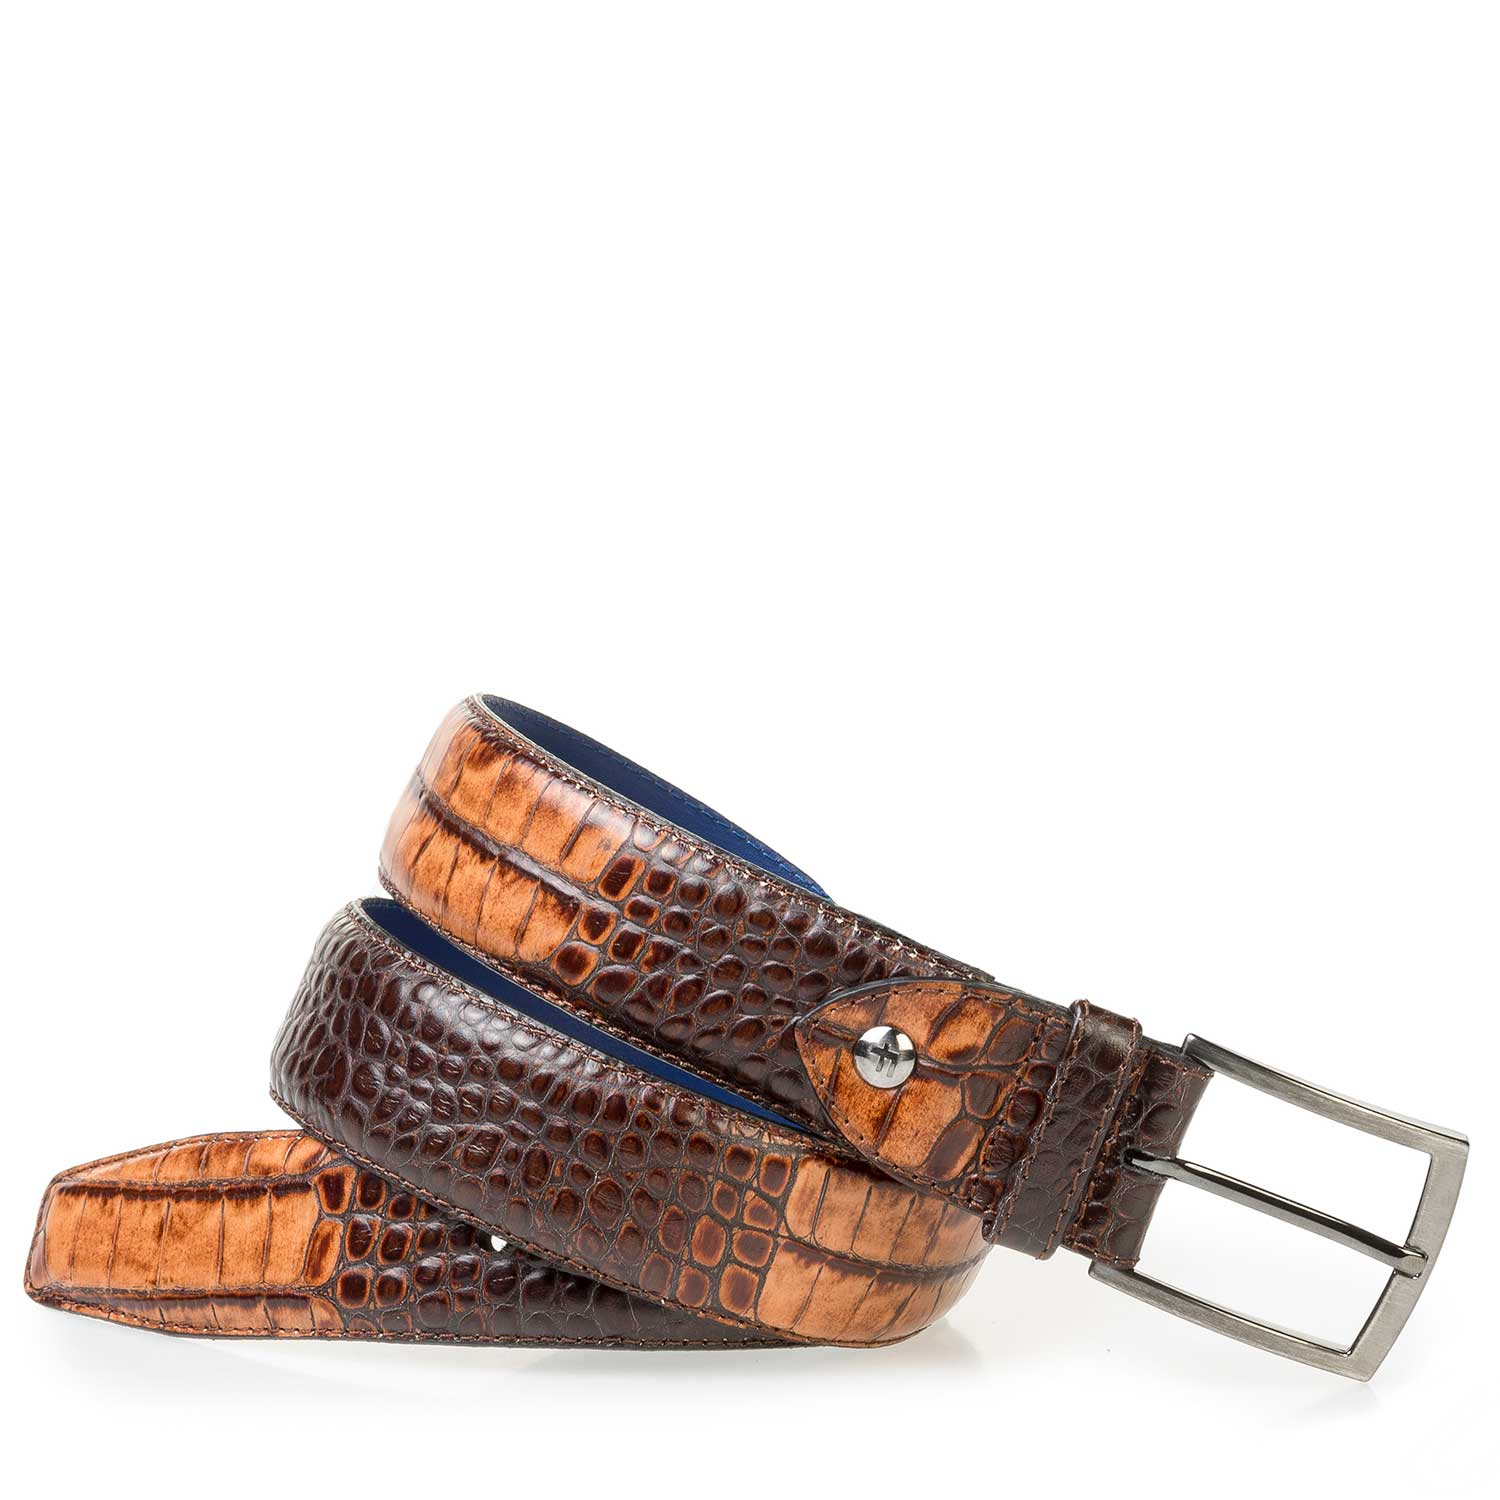 75200/31 - Brown calf leather belt with a croco print